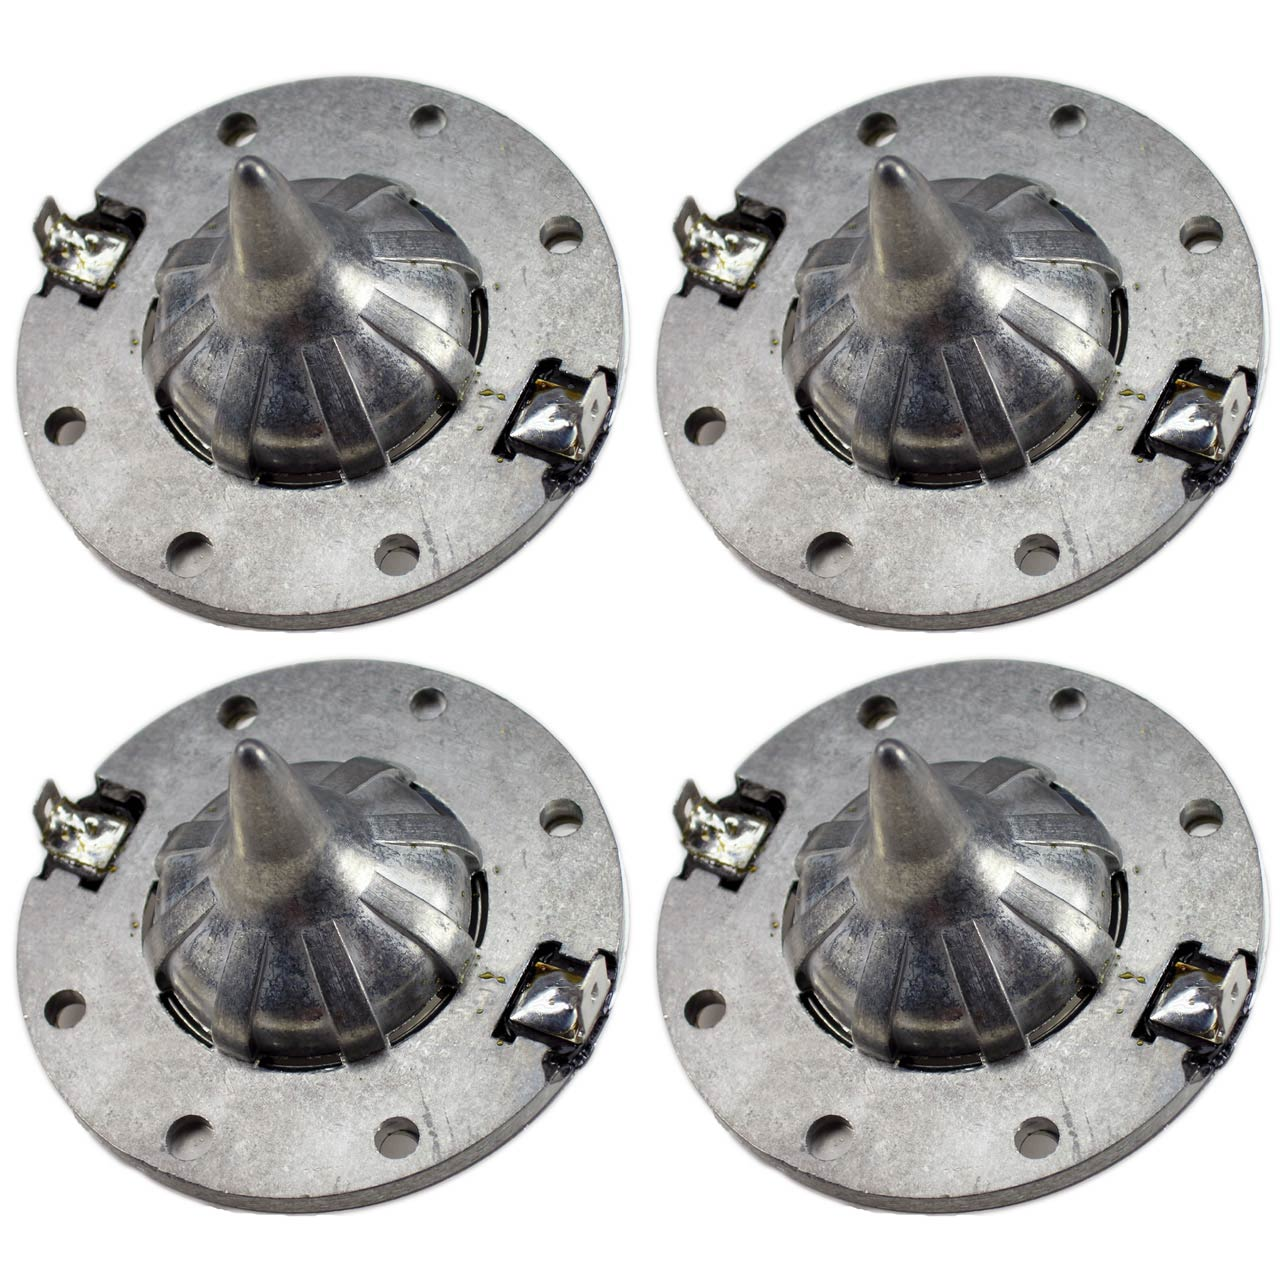 SS Audio Diaphragm for JBL 2408H, 8 Ohm Horn Driver, FULL METAL, D-2408-4 (4 PACK)